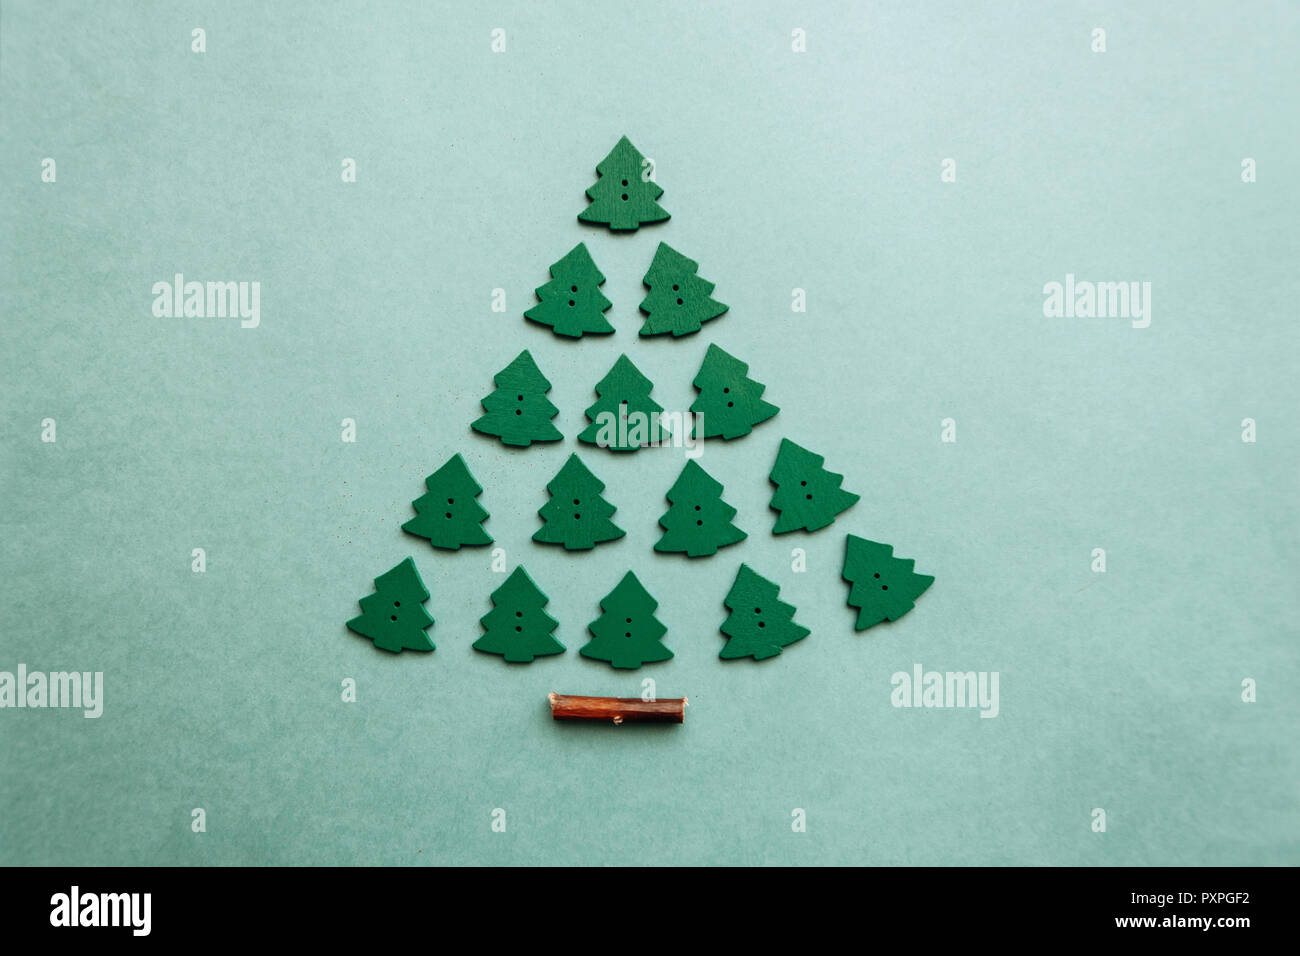 creative idea in minimalistic style for christmas or new year themes christmas tree from other small wooden christmas trees celebratory concept